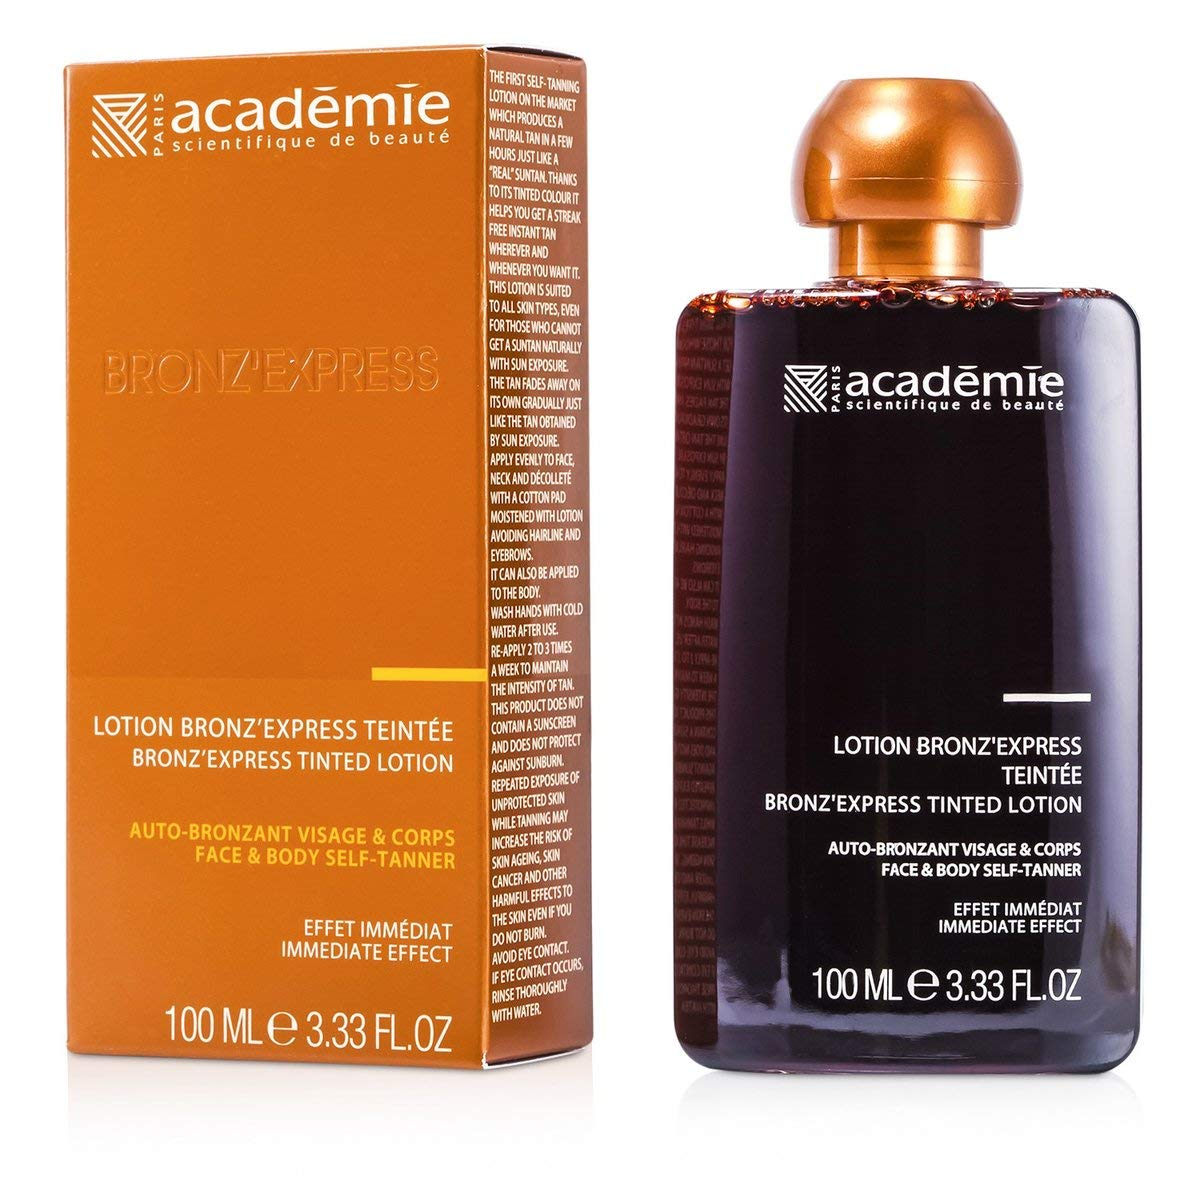 ACADEMIE - Bronz' Express Face and Body - 100ml - Tinted Self Tanning Lotion - Sun Care & Bronzers (Face) - Fine Texture For Easy Application - Delicately Scented With A Floral - Hong Kong